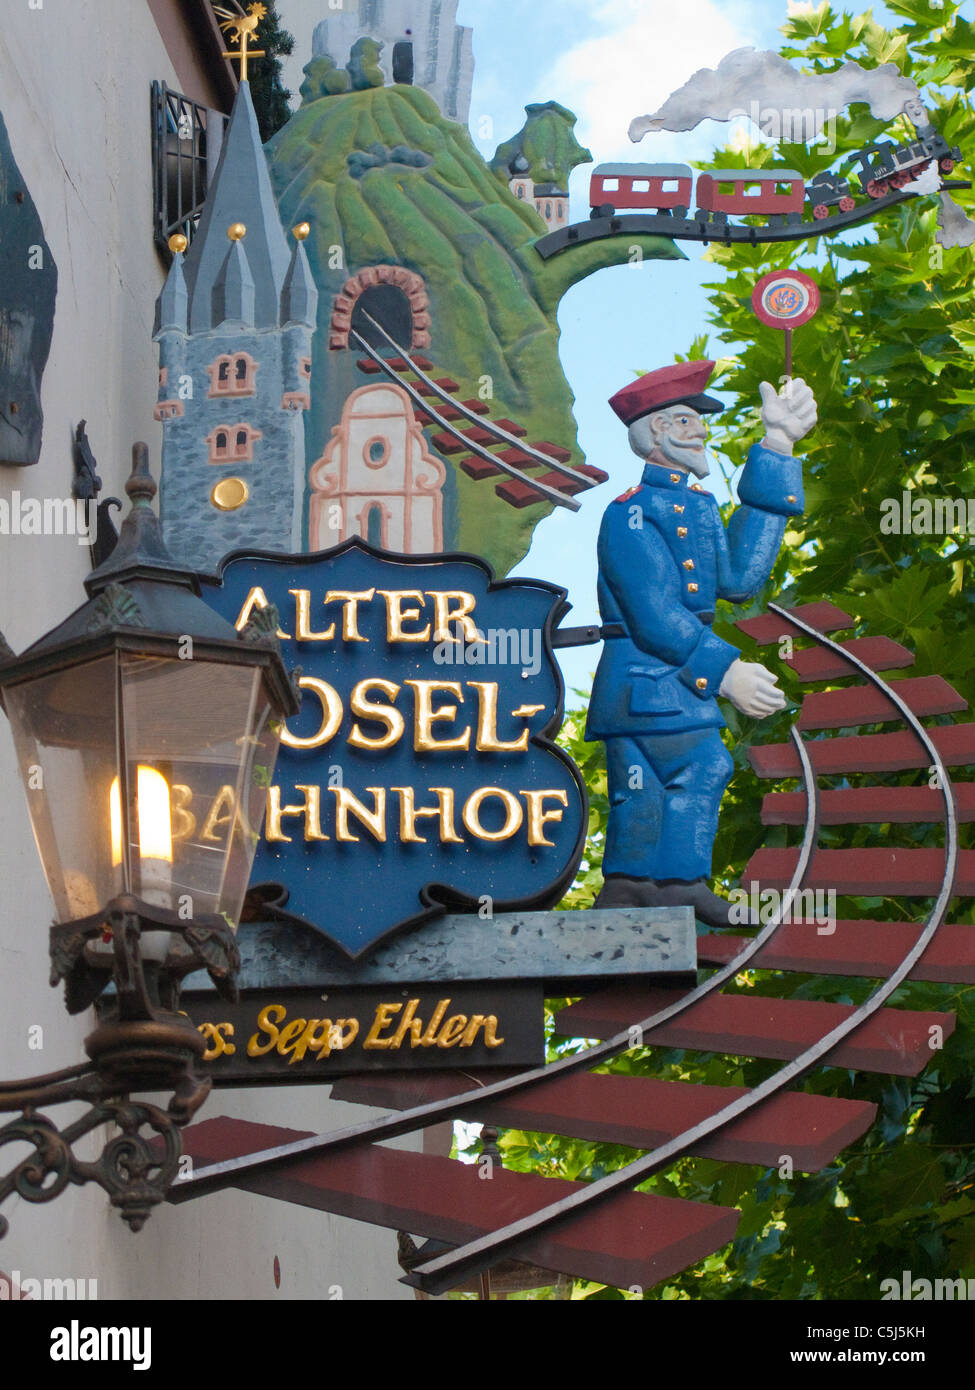 Detail, Wirtshausschild am Eingang zur Gaststaette Alter Mosel-Bahnhof, Mosel, sign at a pub, Moselle - Stock Image